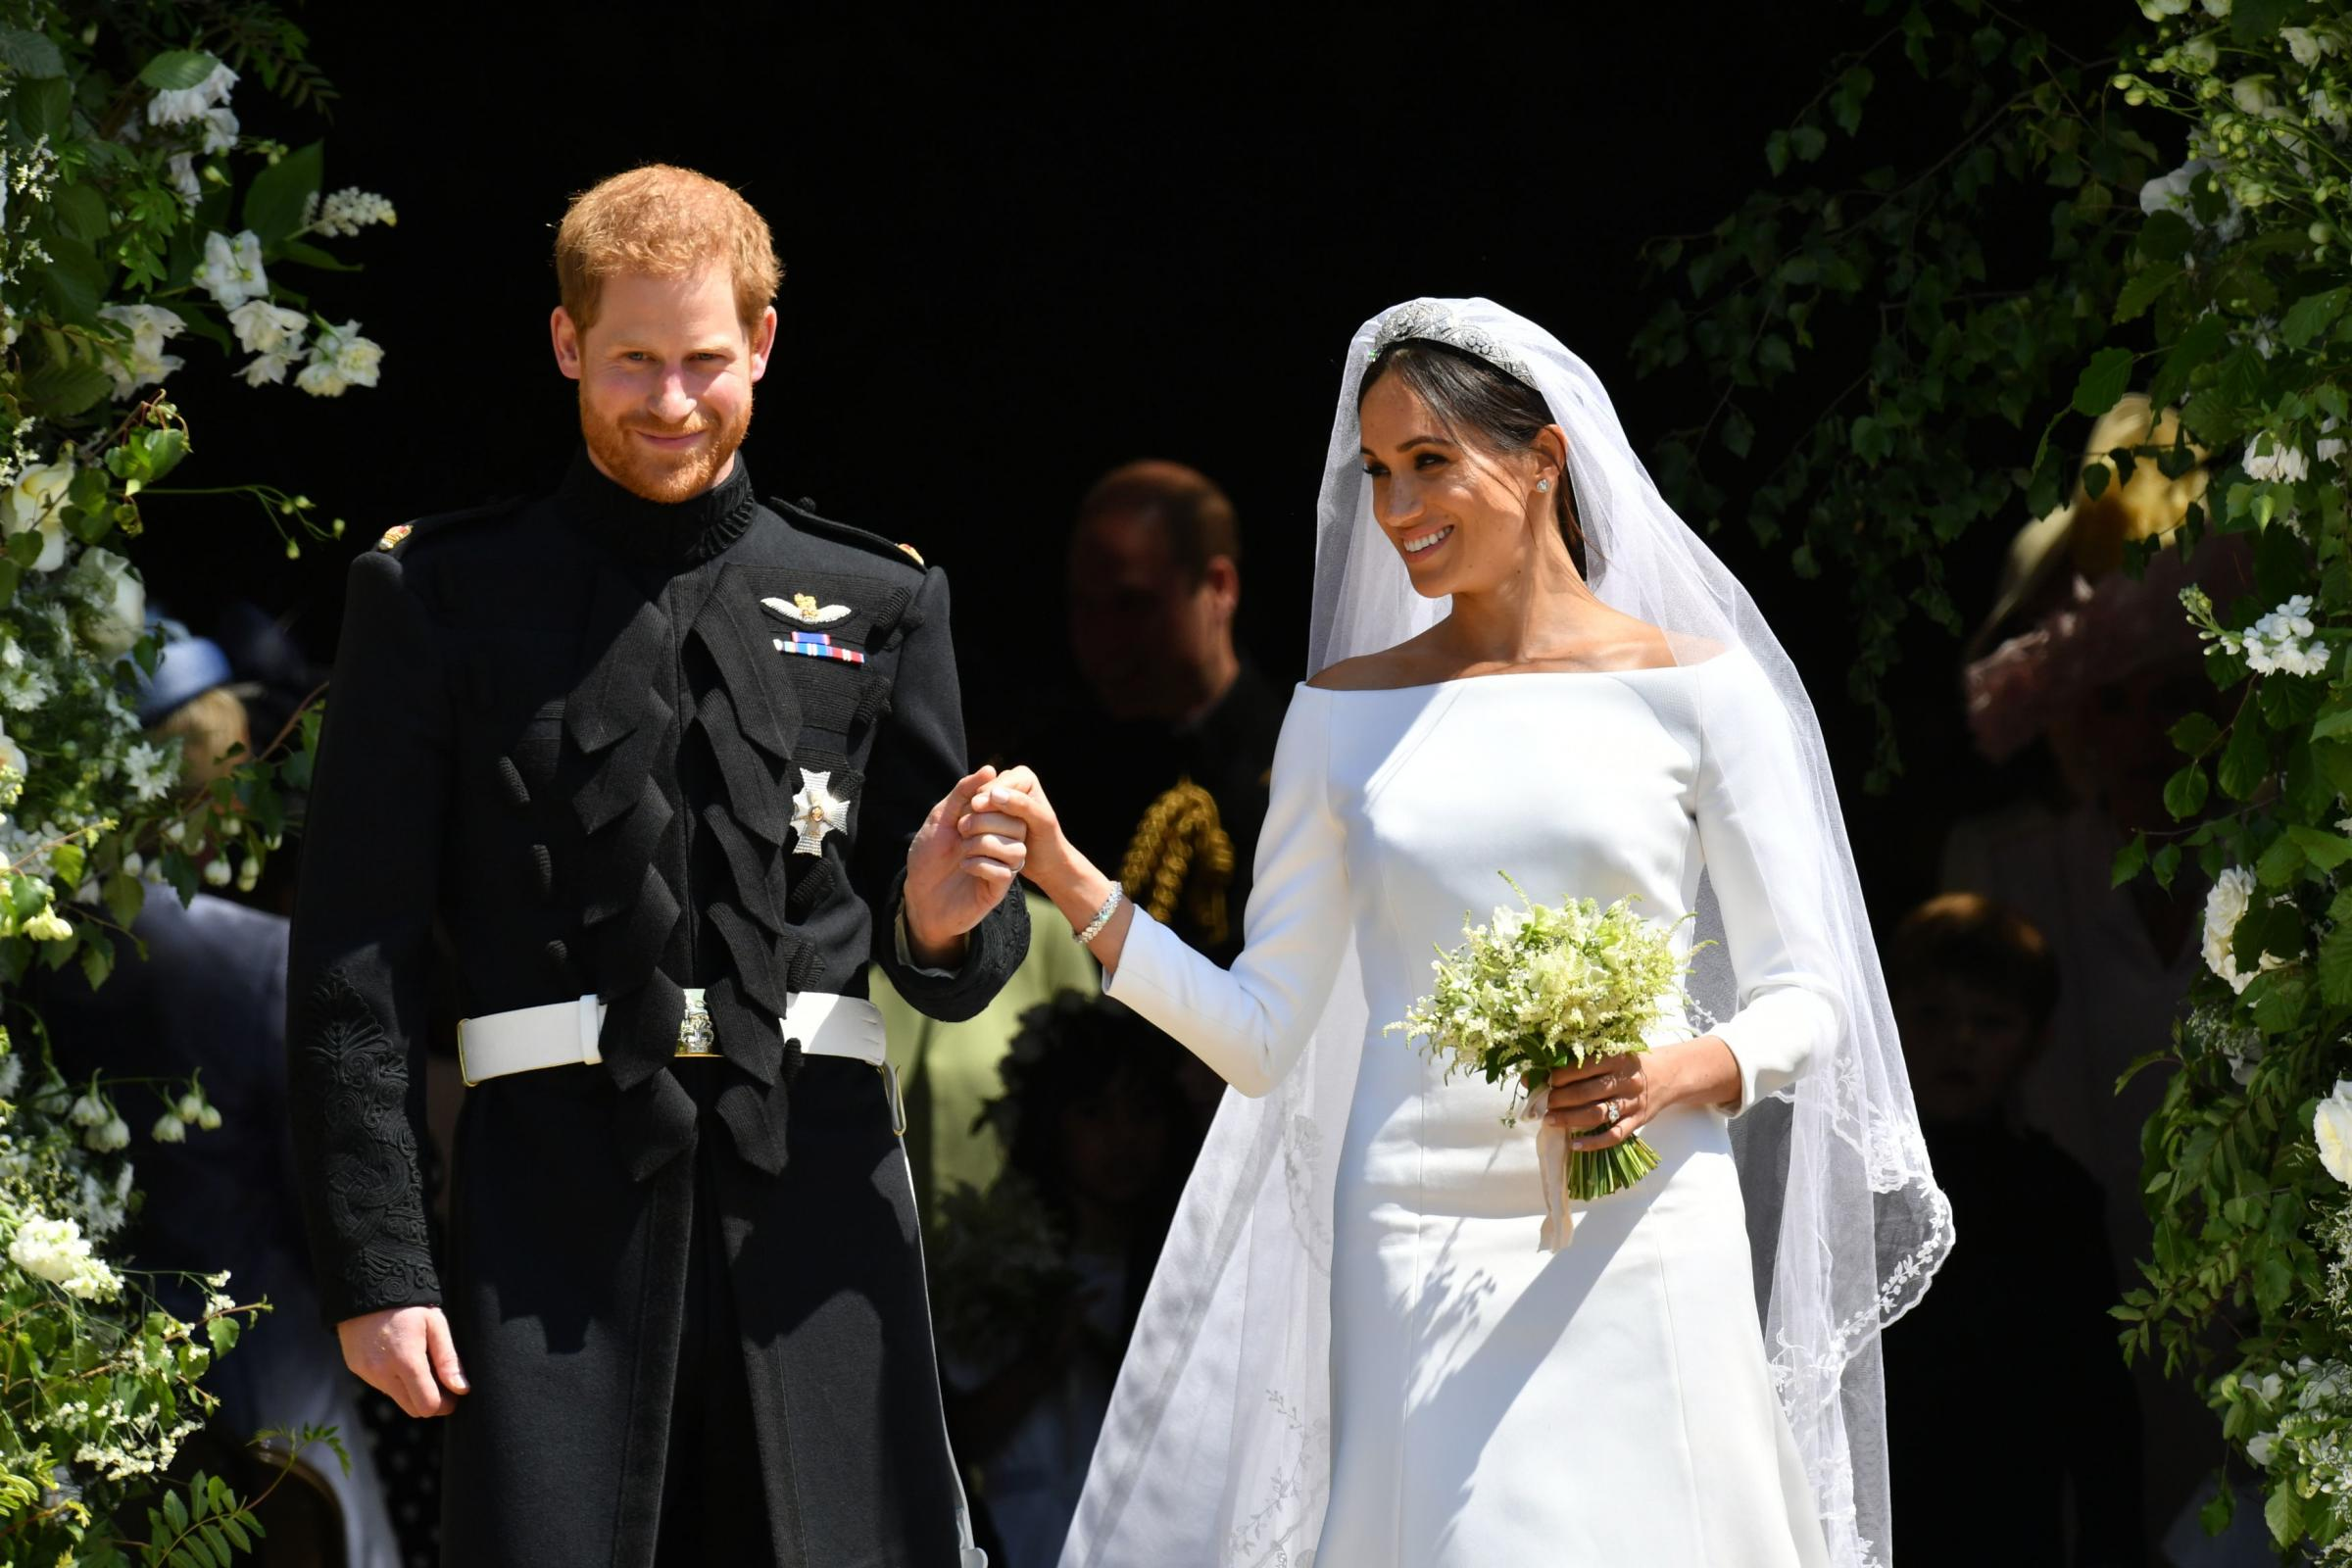 MARRIED  Harry, Duke of Sussex presents his bride, Meghan Duchess of Sussex to the world at the door of St George's Chapel